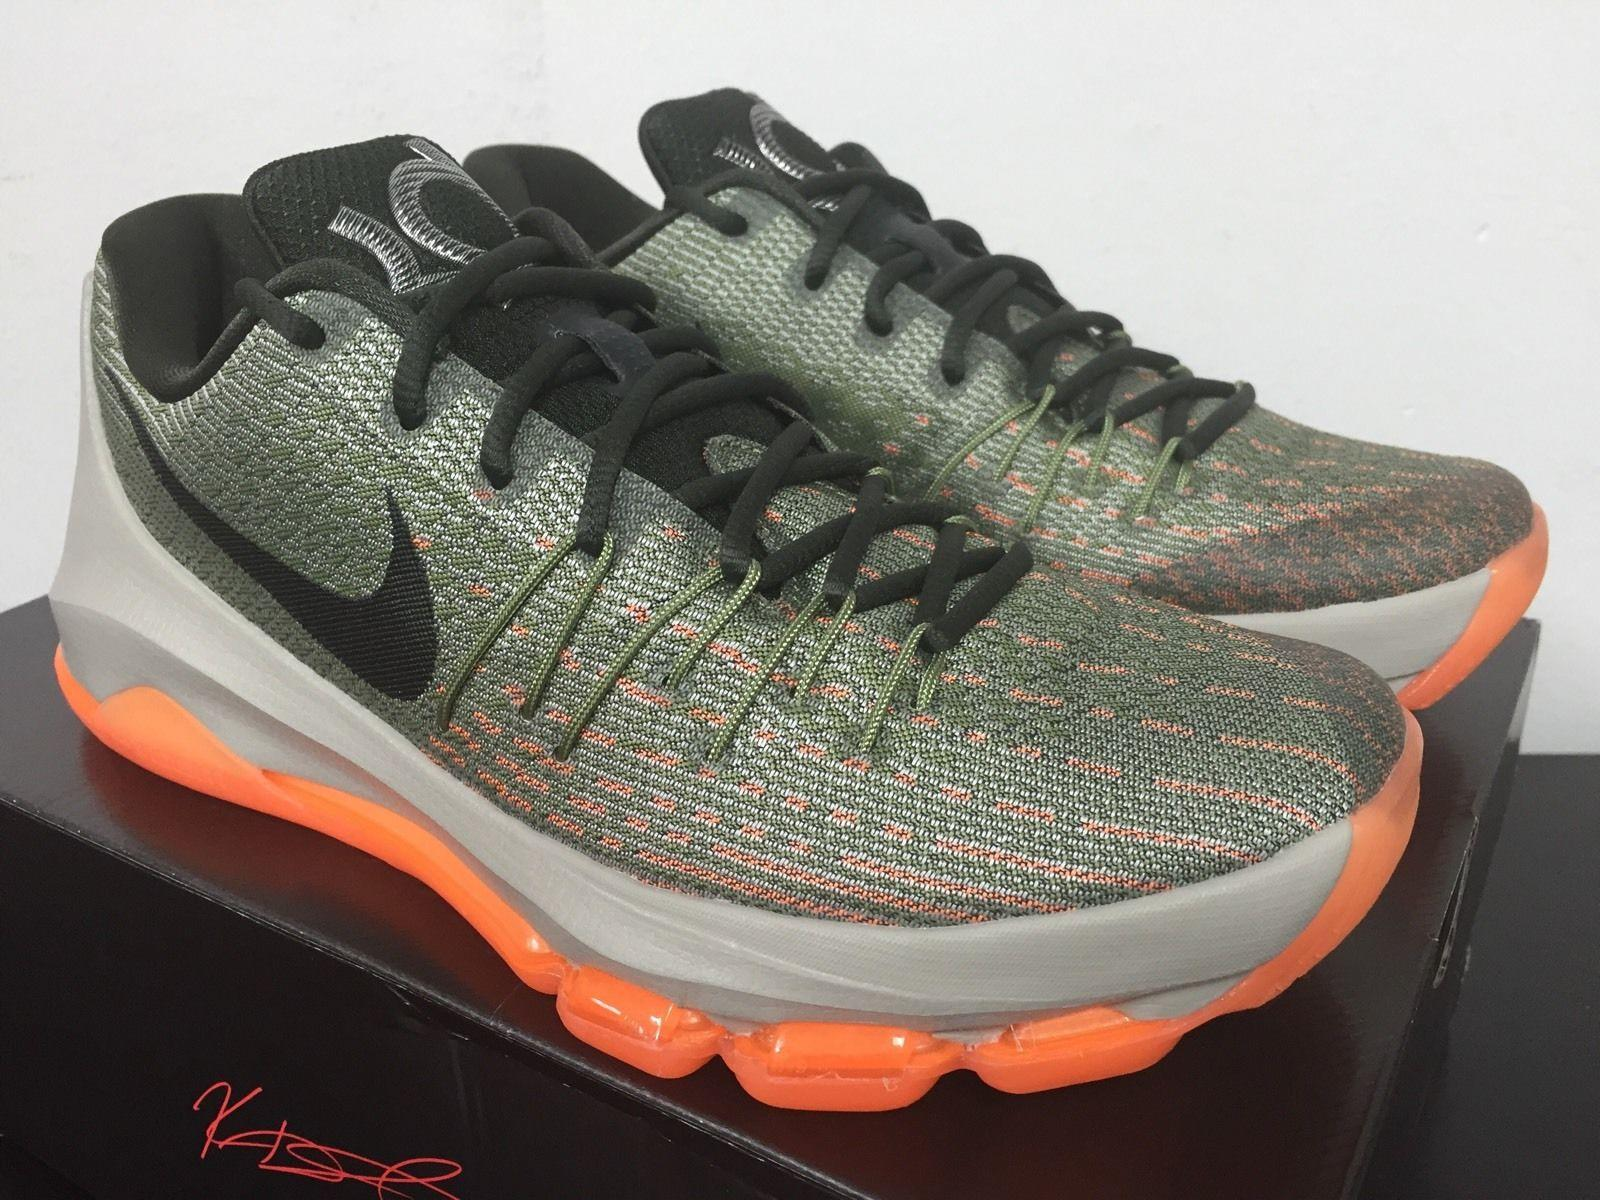 The Latest Nike KD 8 Was Inspired By Kevin Durant's Nickname